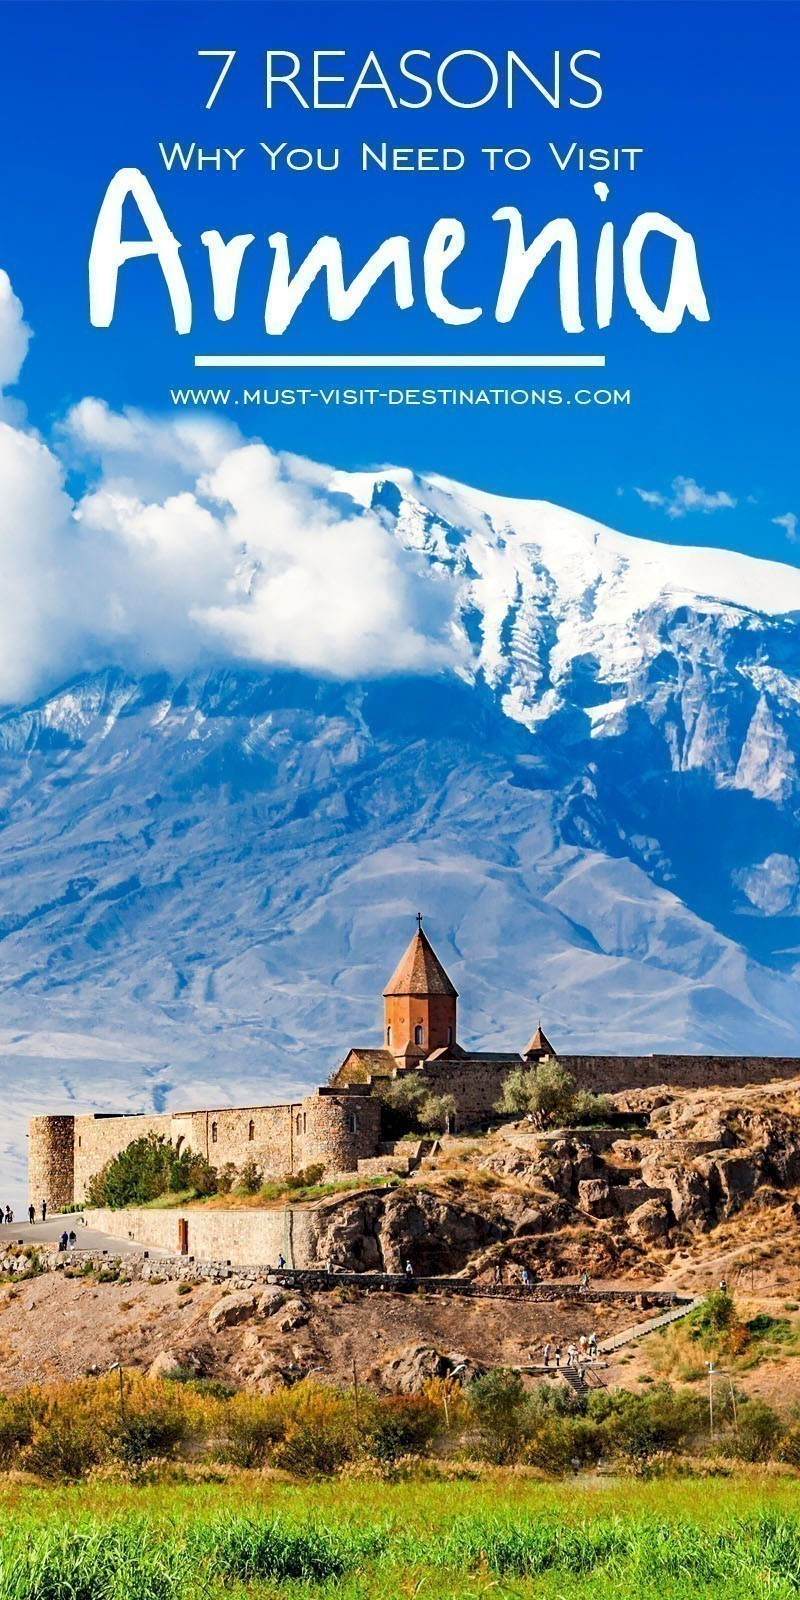 7 Reasons Why You Need to Visit Armenia #travel #Armenia